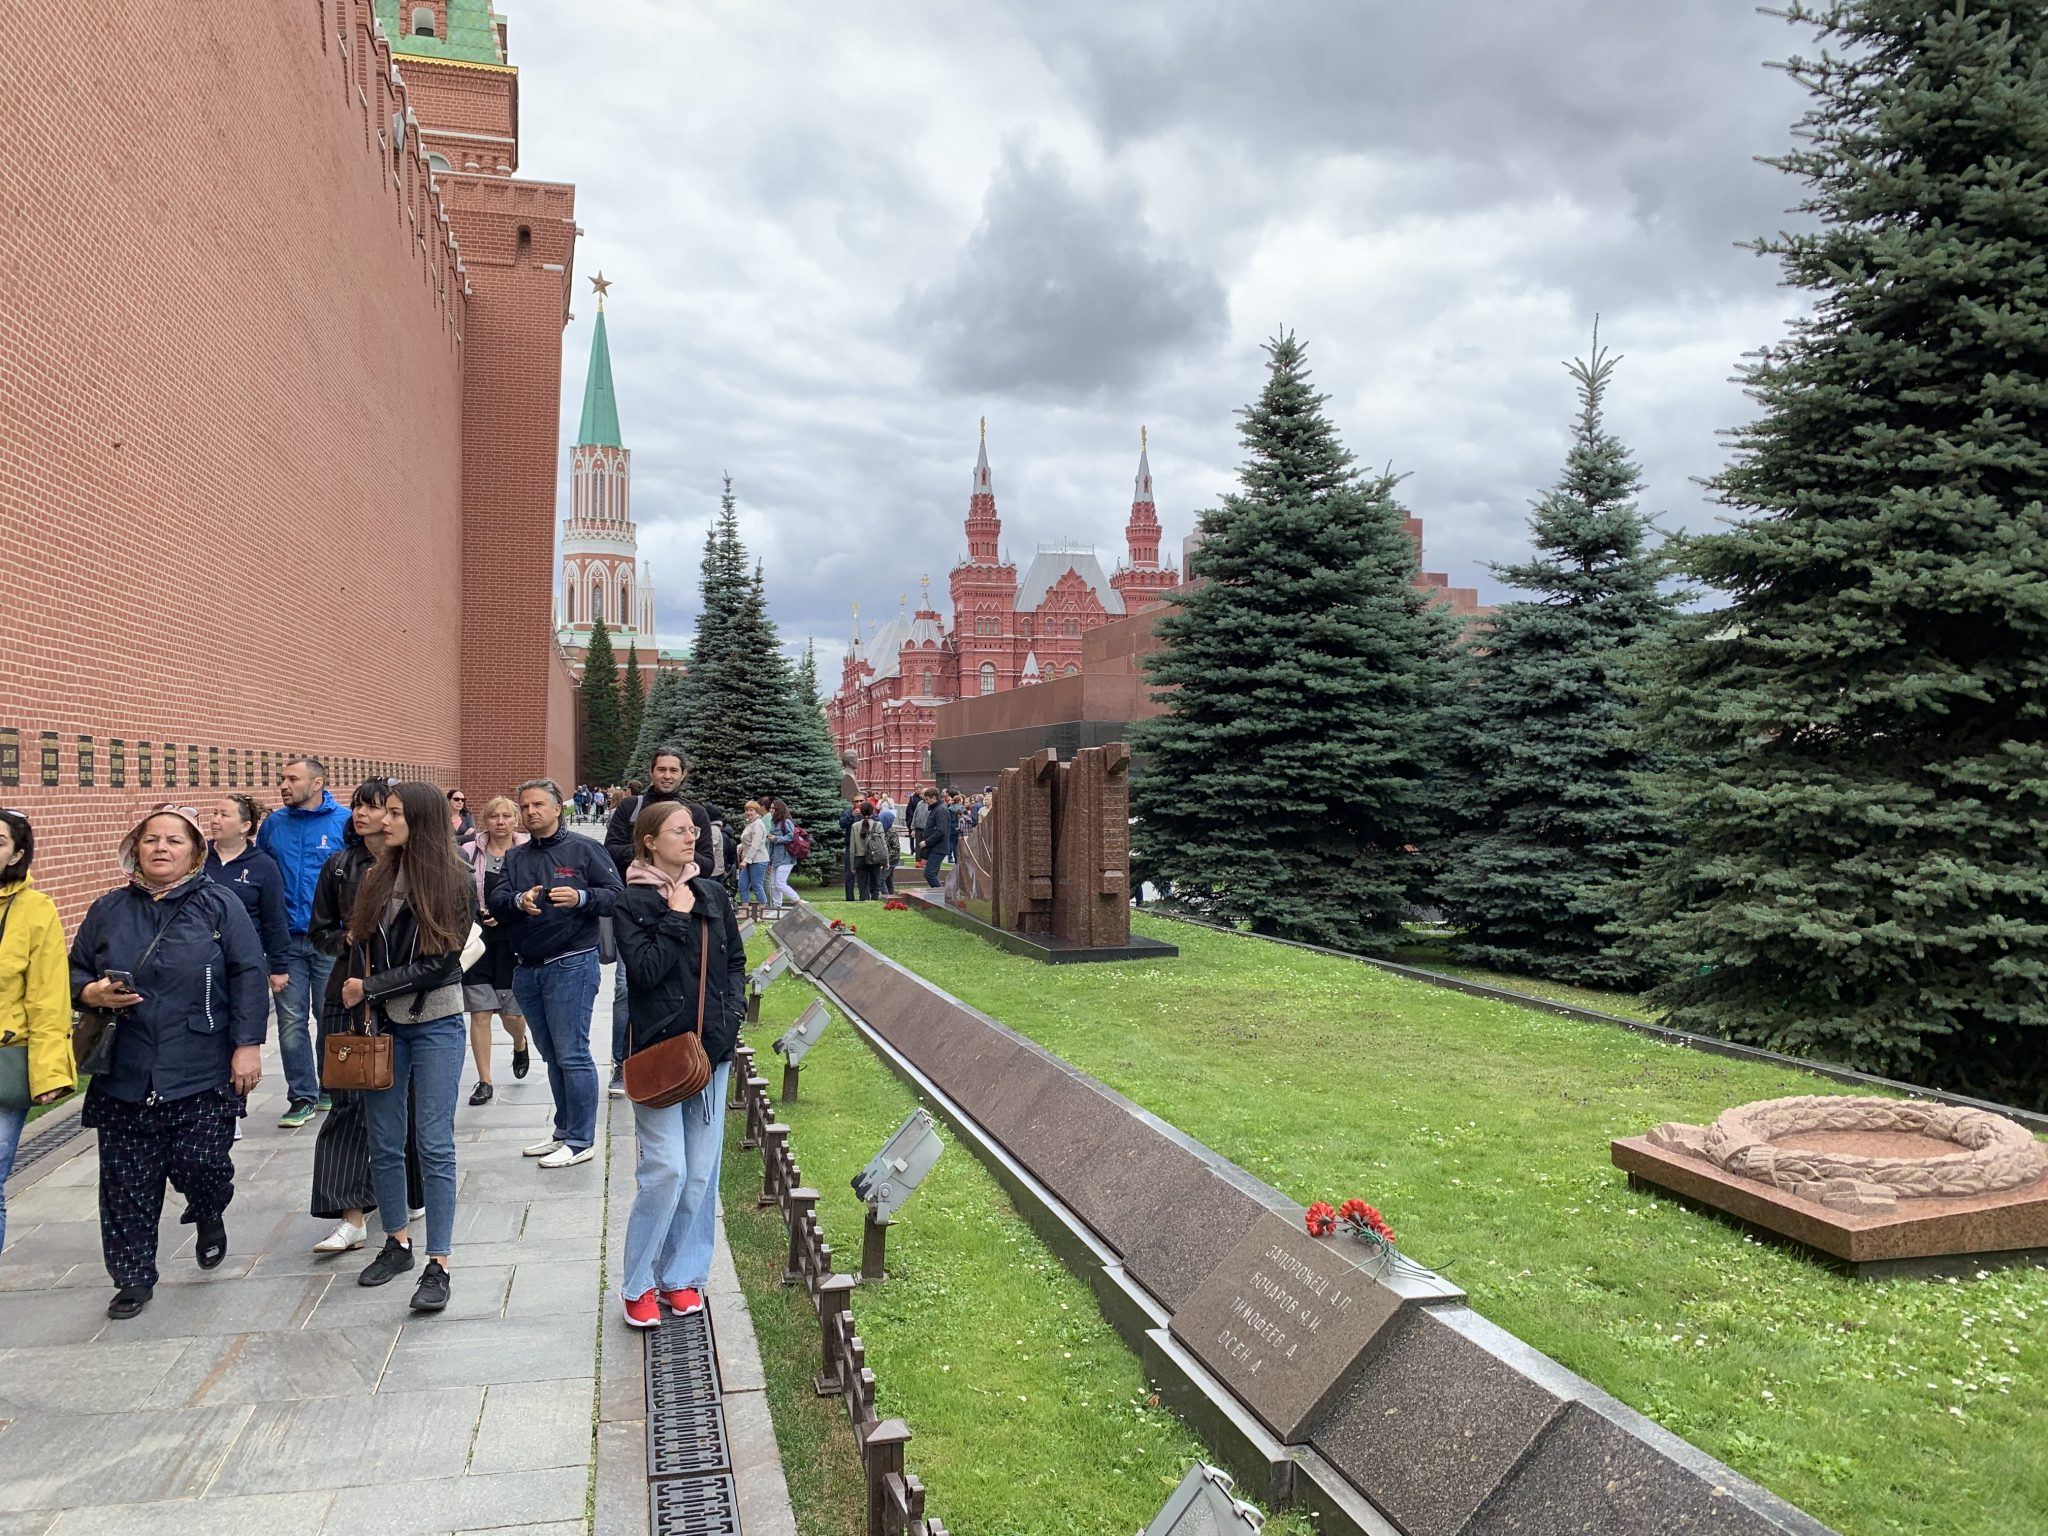 Looking back toward Lenin's Mausoleum